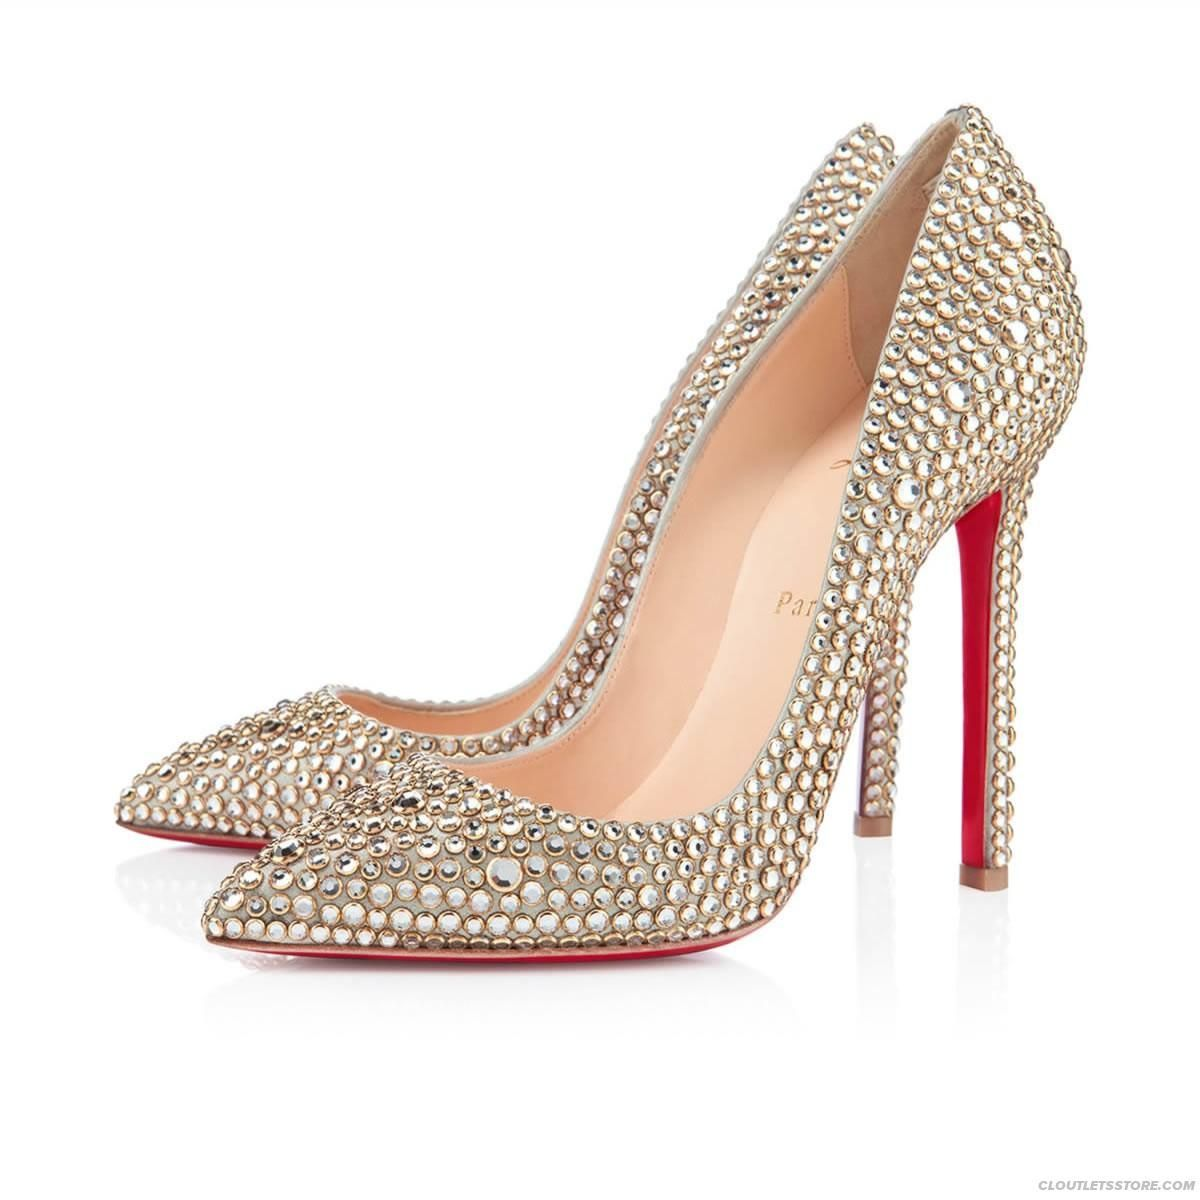 fa95d7a6bd7 I do not need Christian Louboutin Wedding Shoes. Or maybe I do... you only  get married once! (Lets hope)